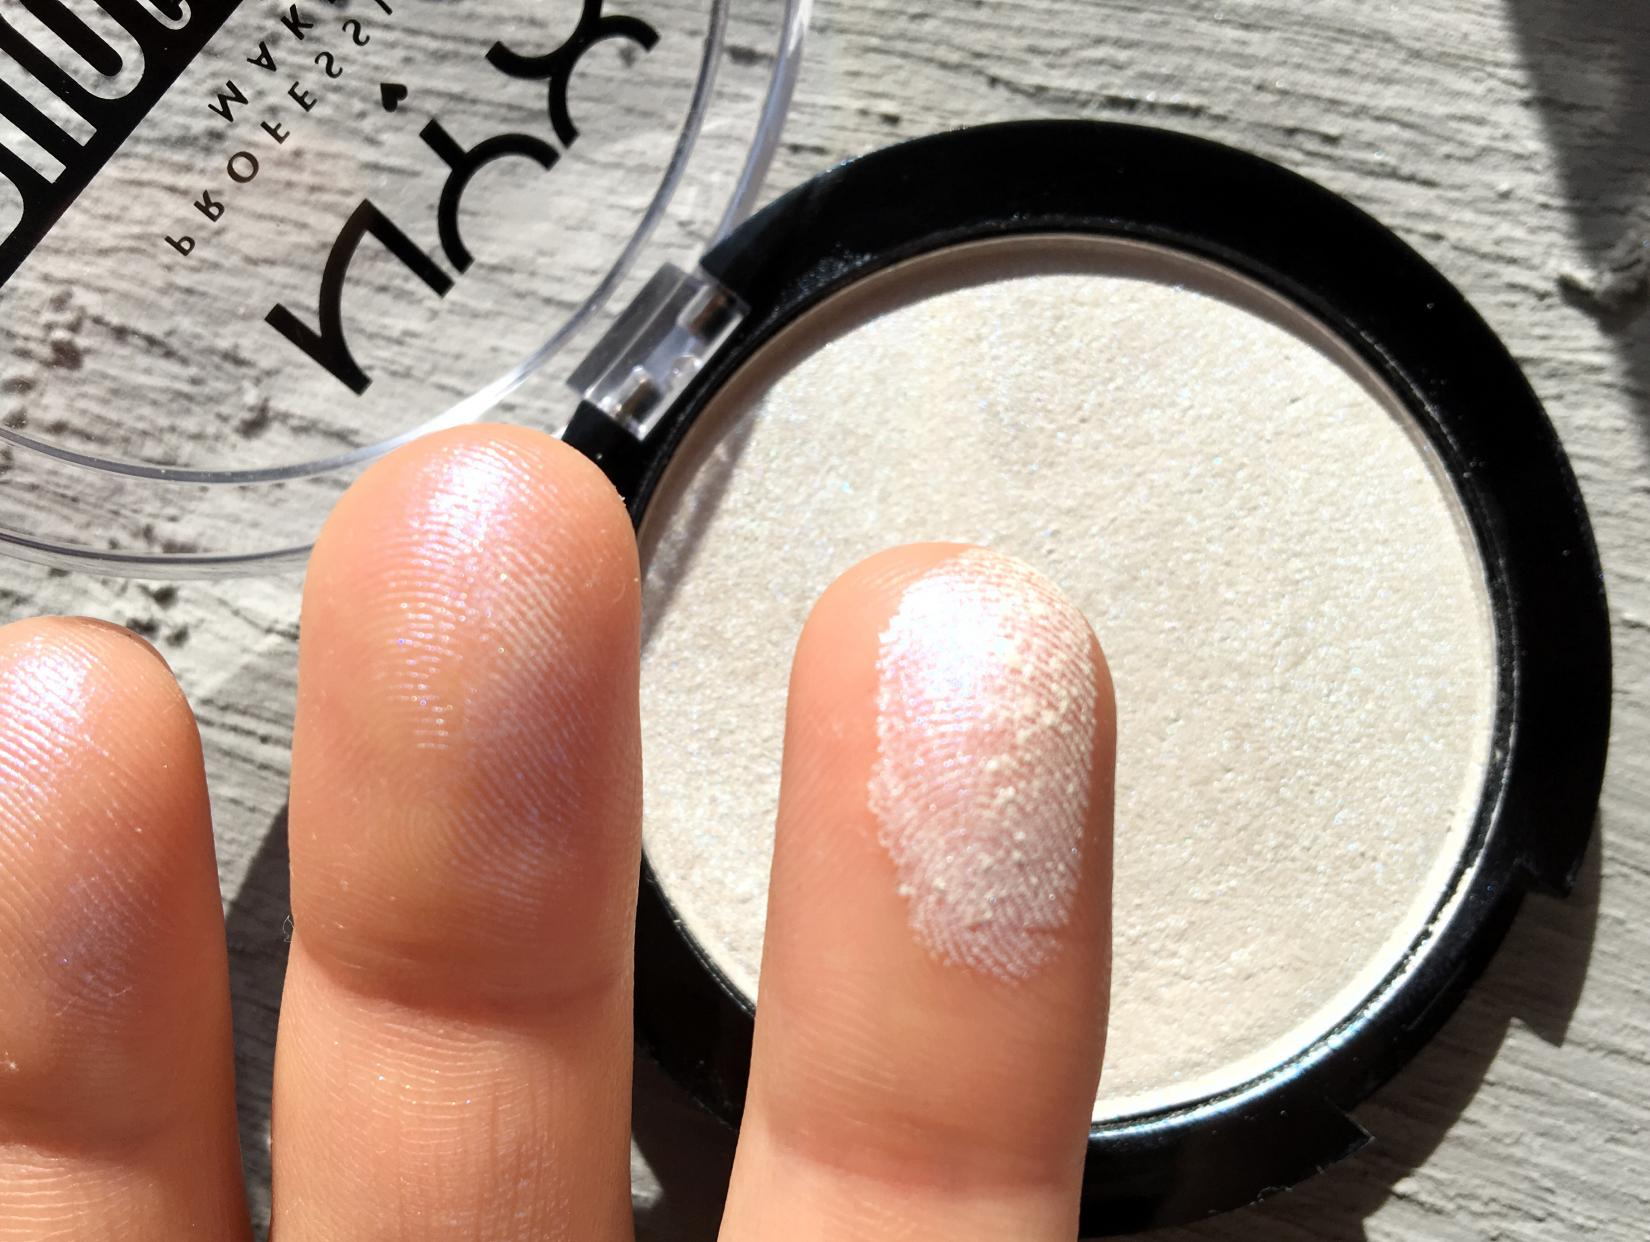 NYX Duo Chromatic Illuminating Powder - текстура